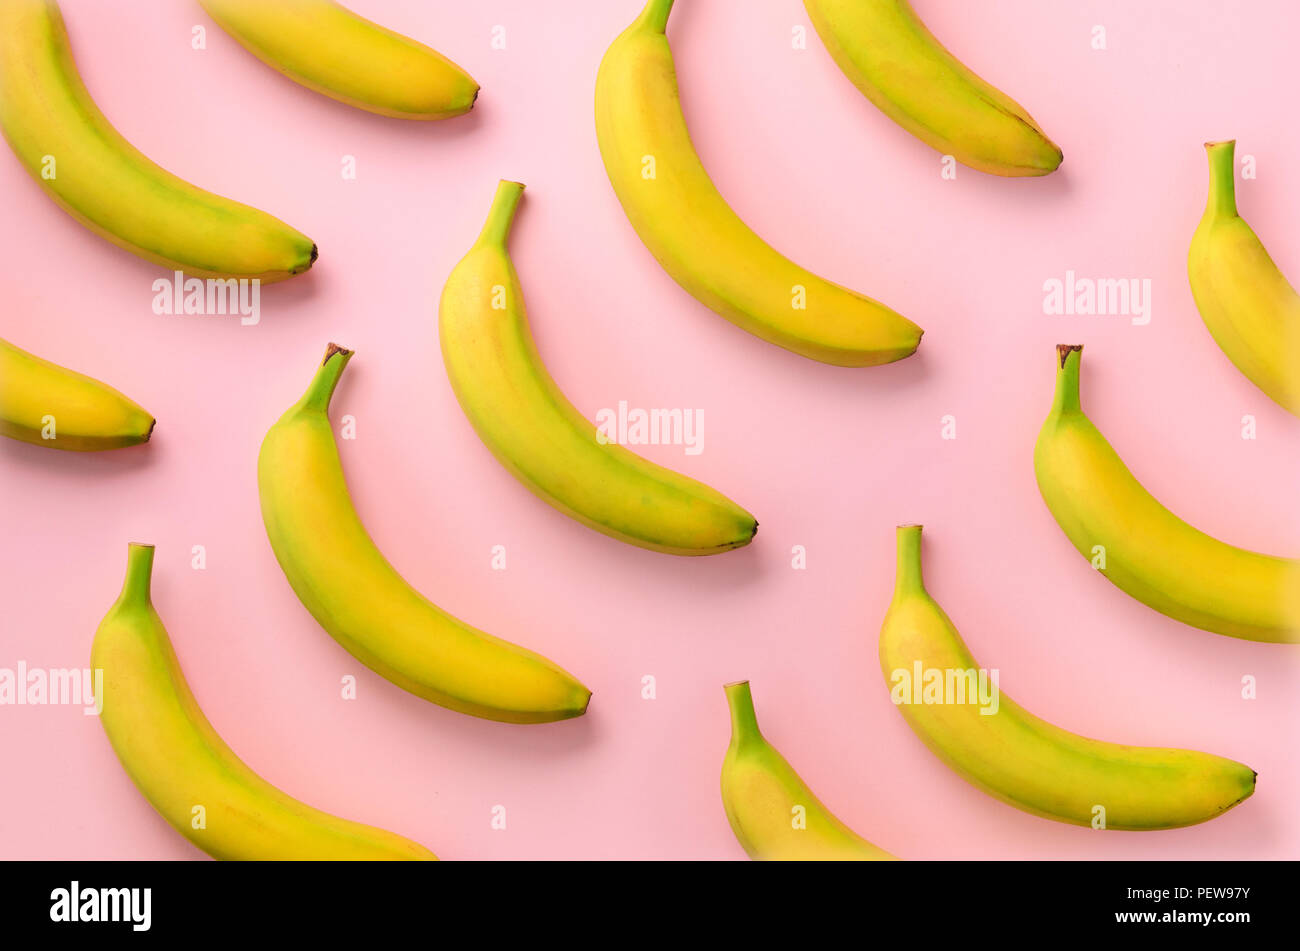 Colorful fruit pattern. Bananas over pink background. Top view. Pop art design, creative summer concept. Minimal flat lay style - Stock Image